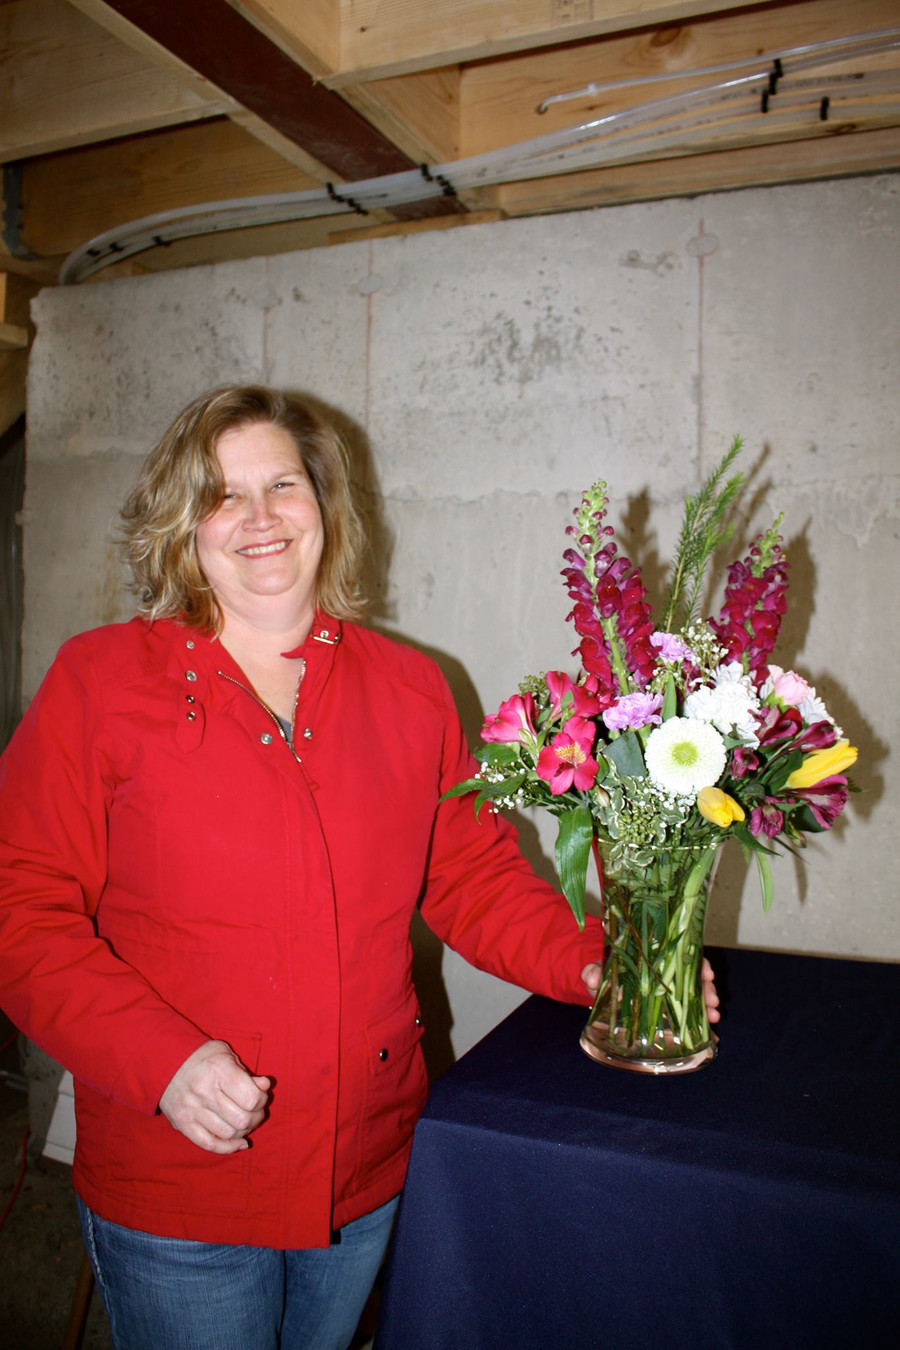 Delivering flowers to farmers